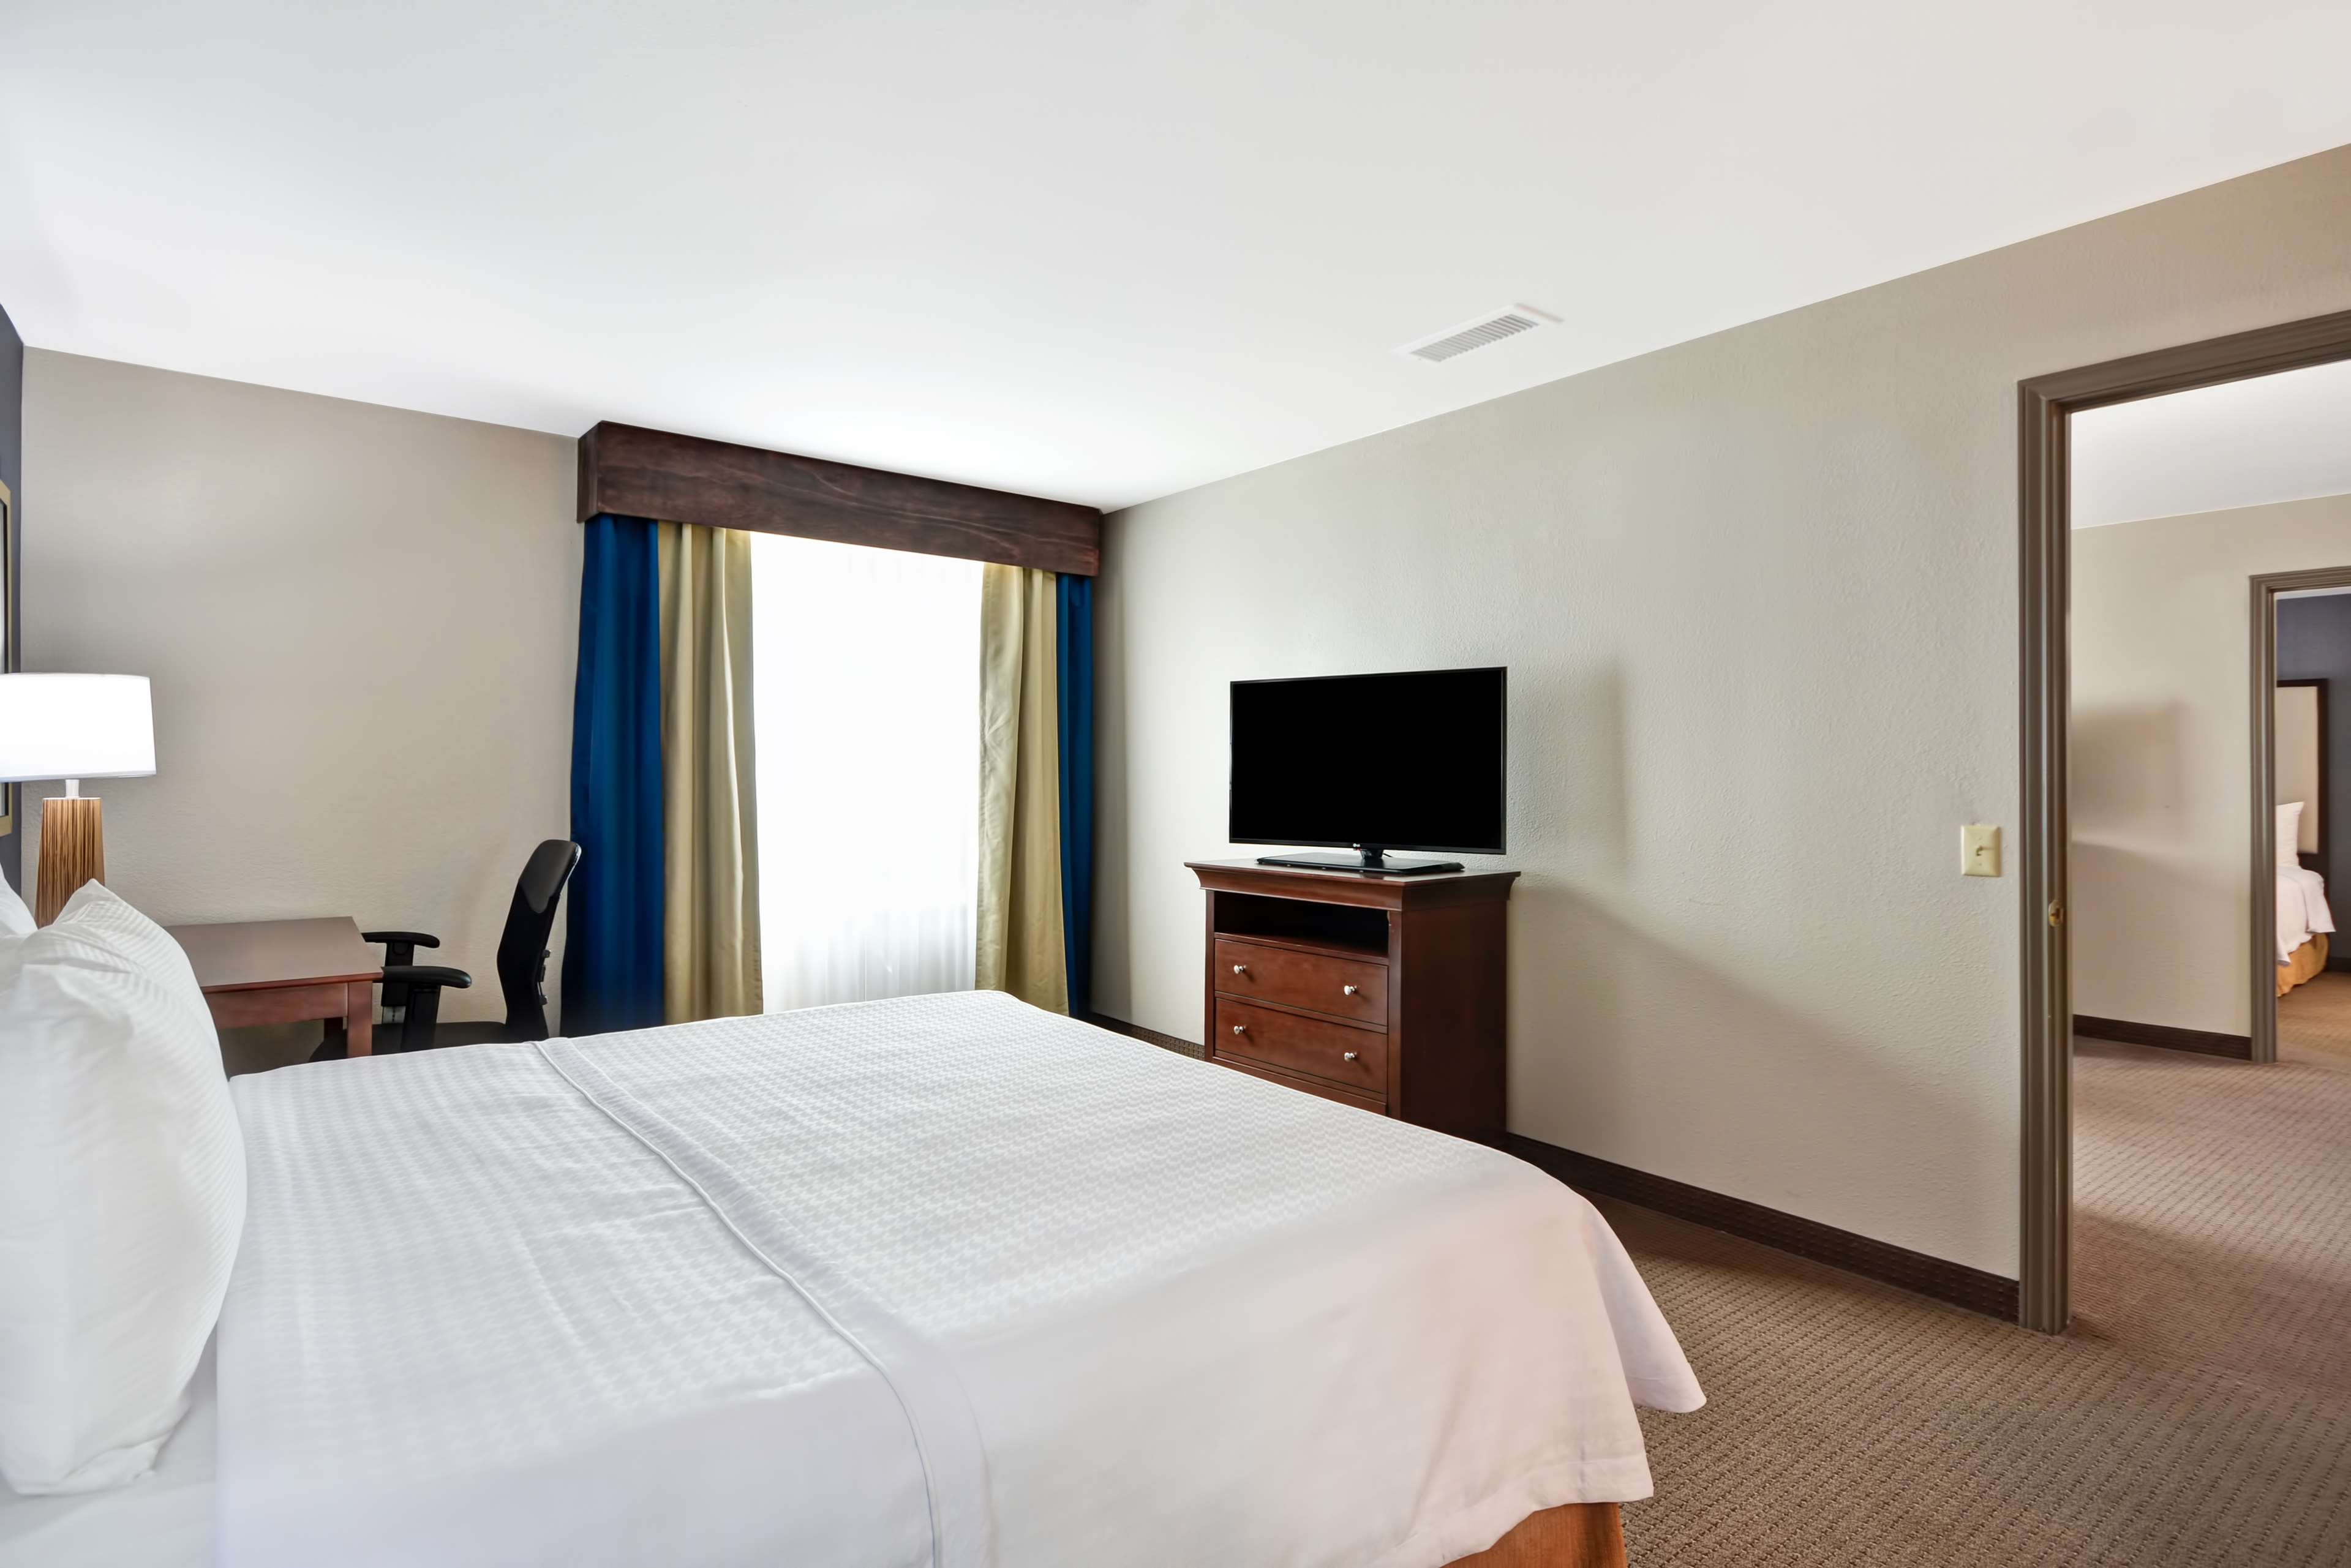 Homewood Suites by Hilton Dallas-Lewisville image 16